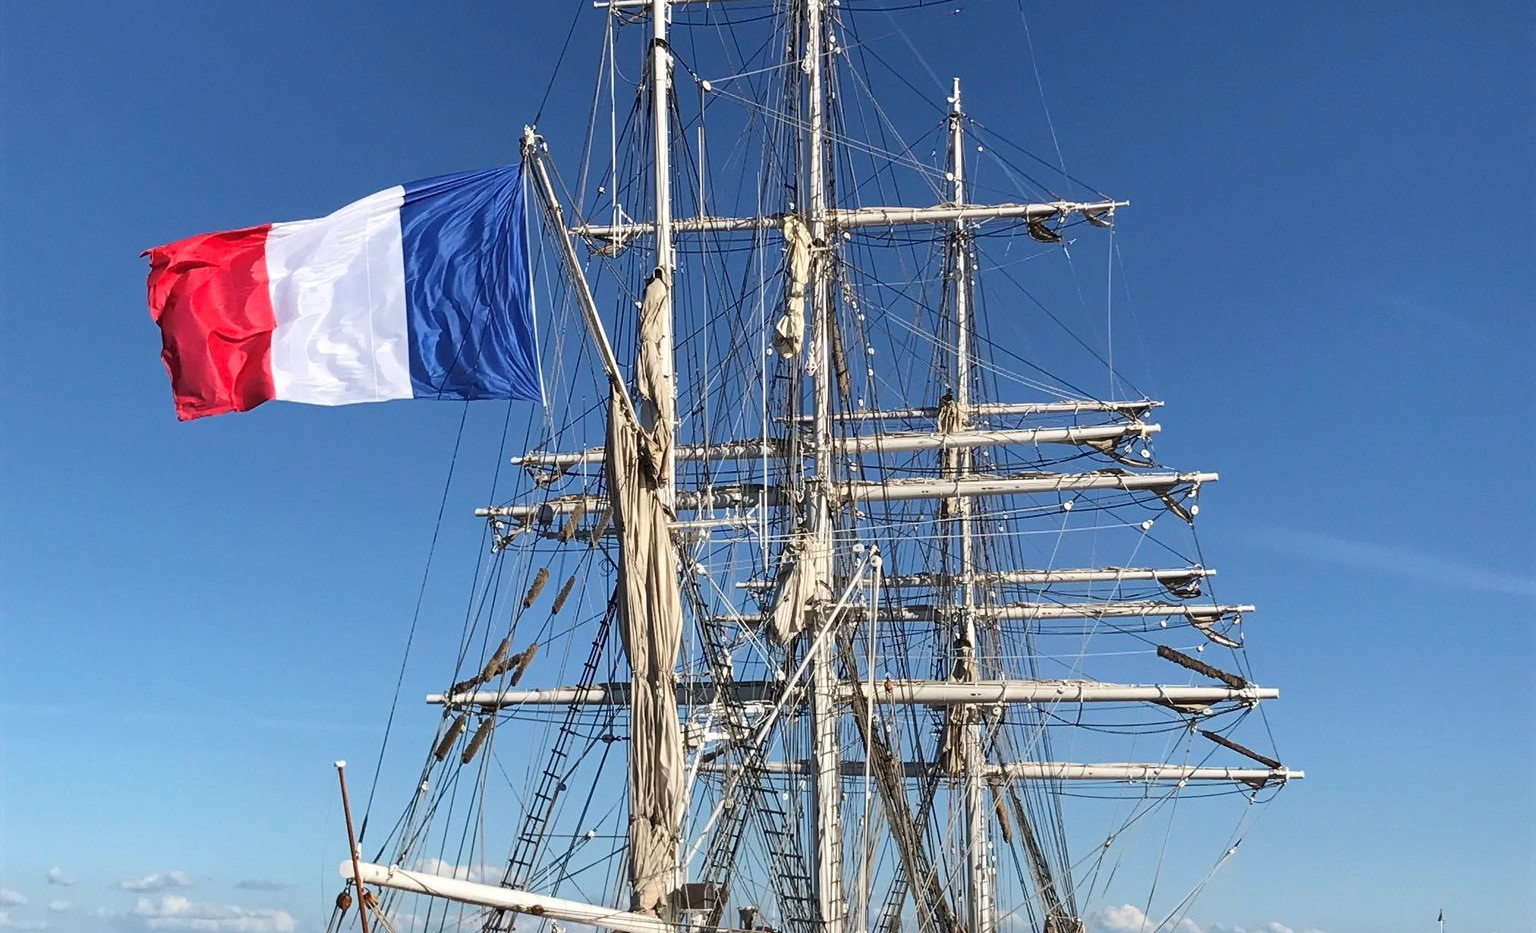 Tall Ship - Pauillac Harbour